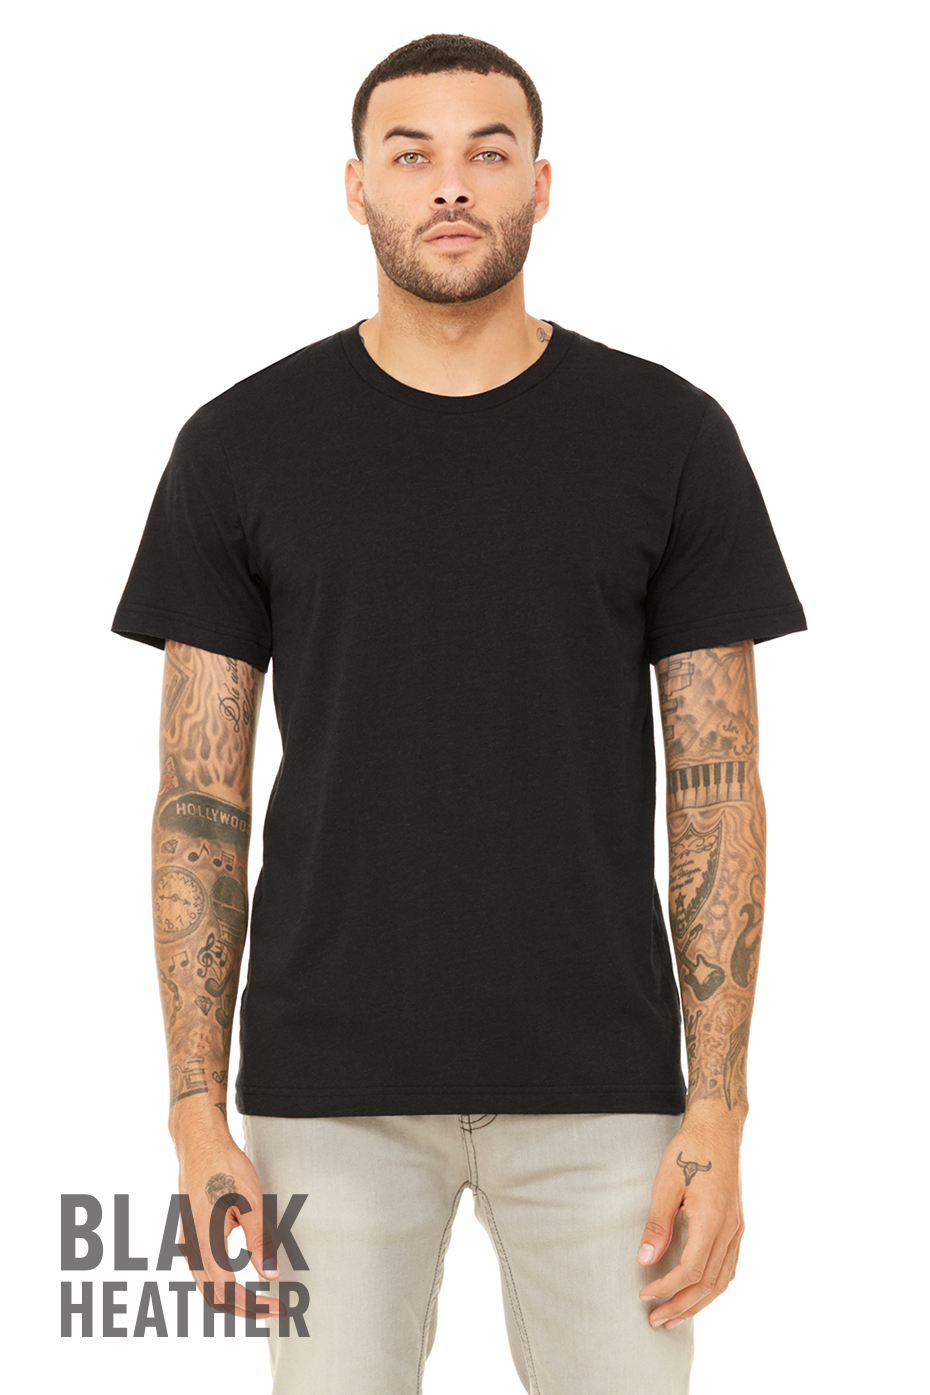 Black t shirt unisex - Colors Available Grey Triblend